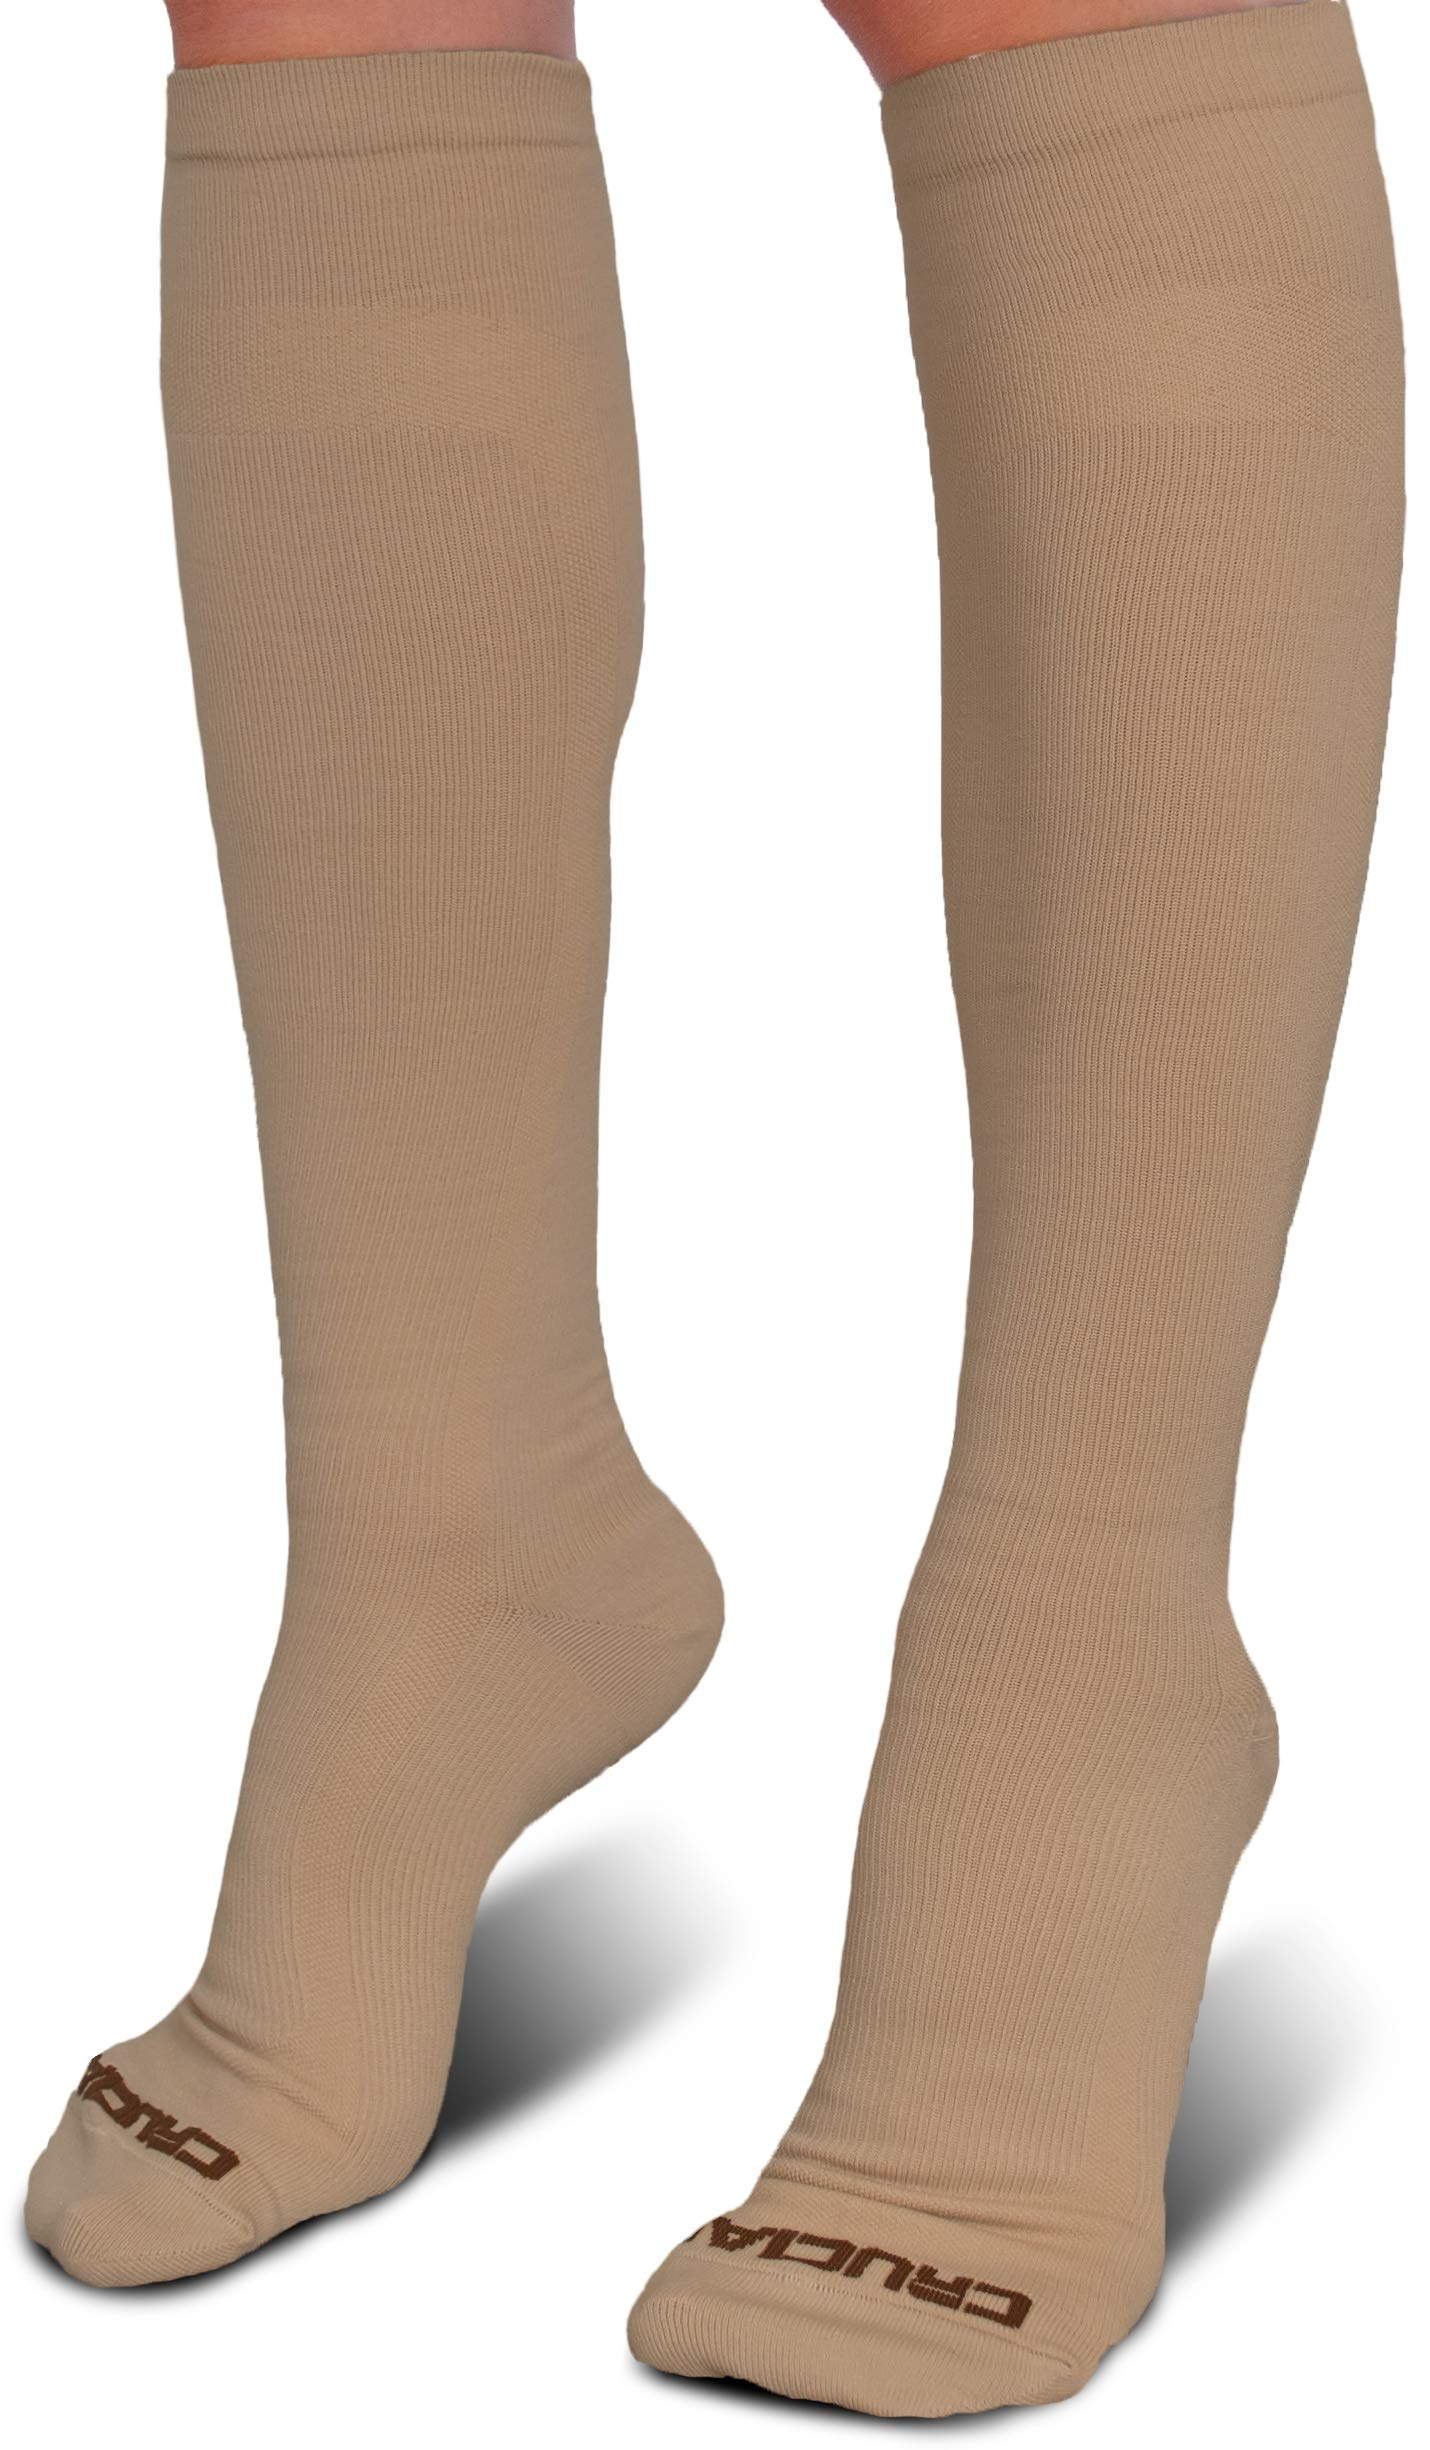 ebf2f42ad9 Crucial Compression Socks for Men & Women (20-30mmHg) - Best Graduated  Stockings